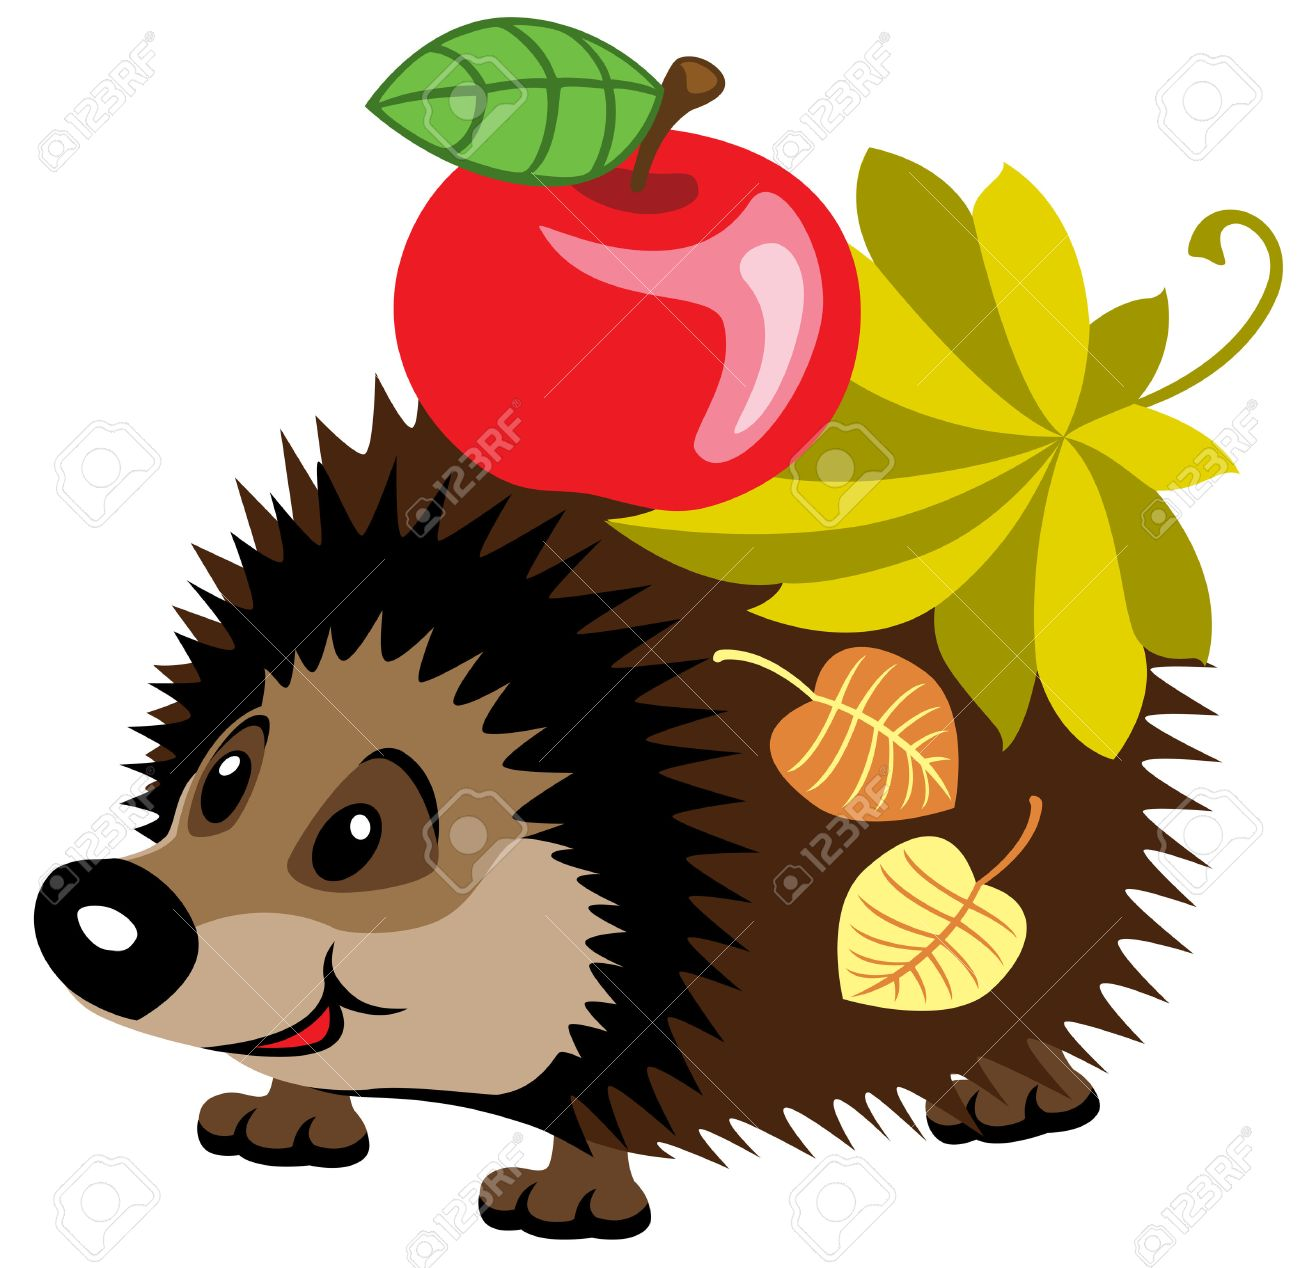 hight resolution of 1300x1268 5 478 hedgehog cartoon stock illustrations cliparts and royalty